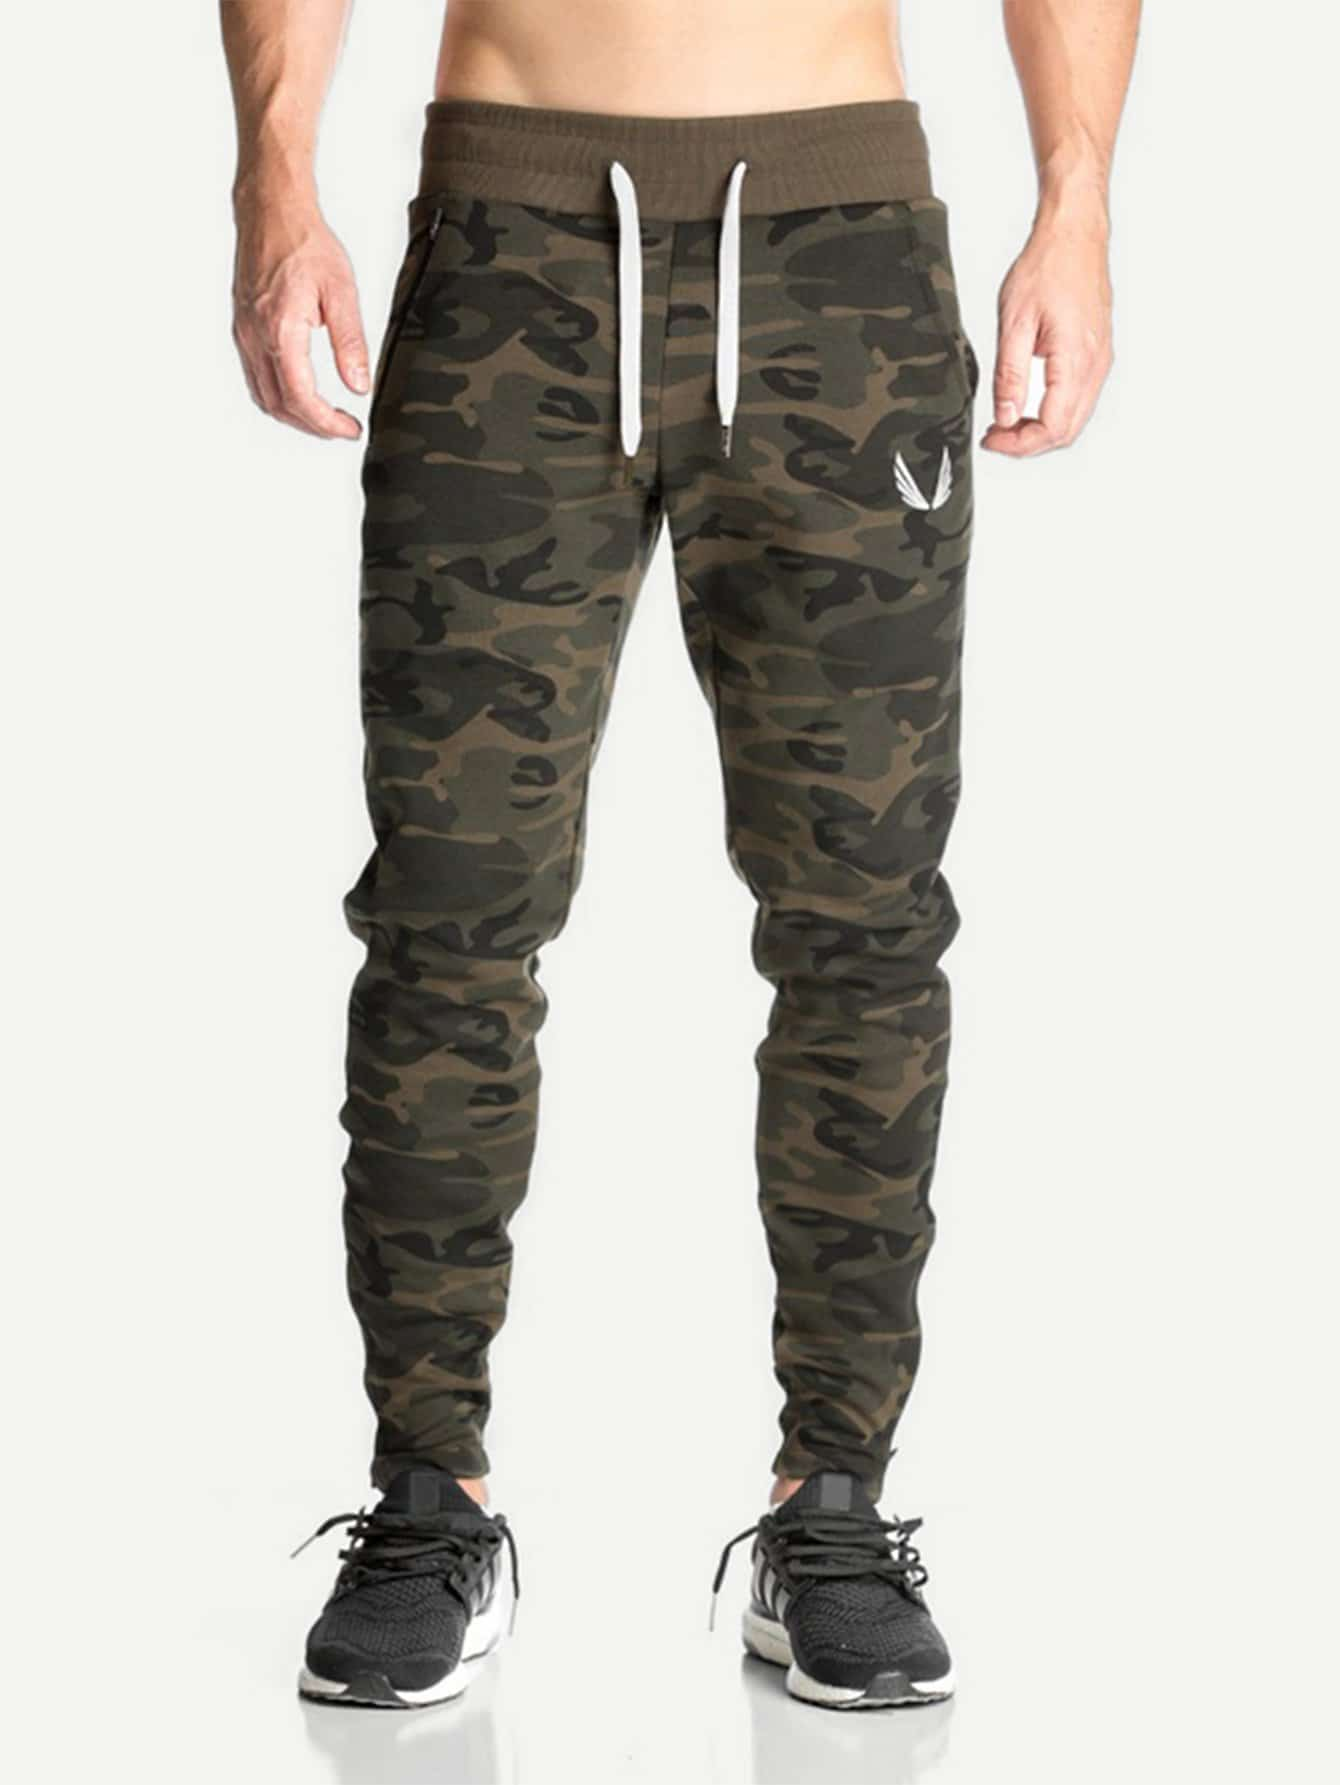 Men Camo Print Drawstring Waist Pants idopy men s street style denim pants camouflage camo joggers stretchy drawstring biker cargo pants for hipster